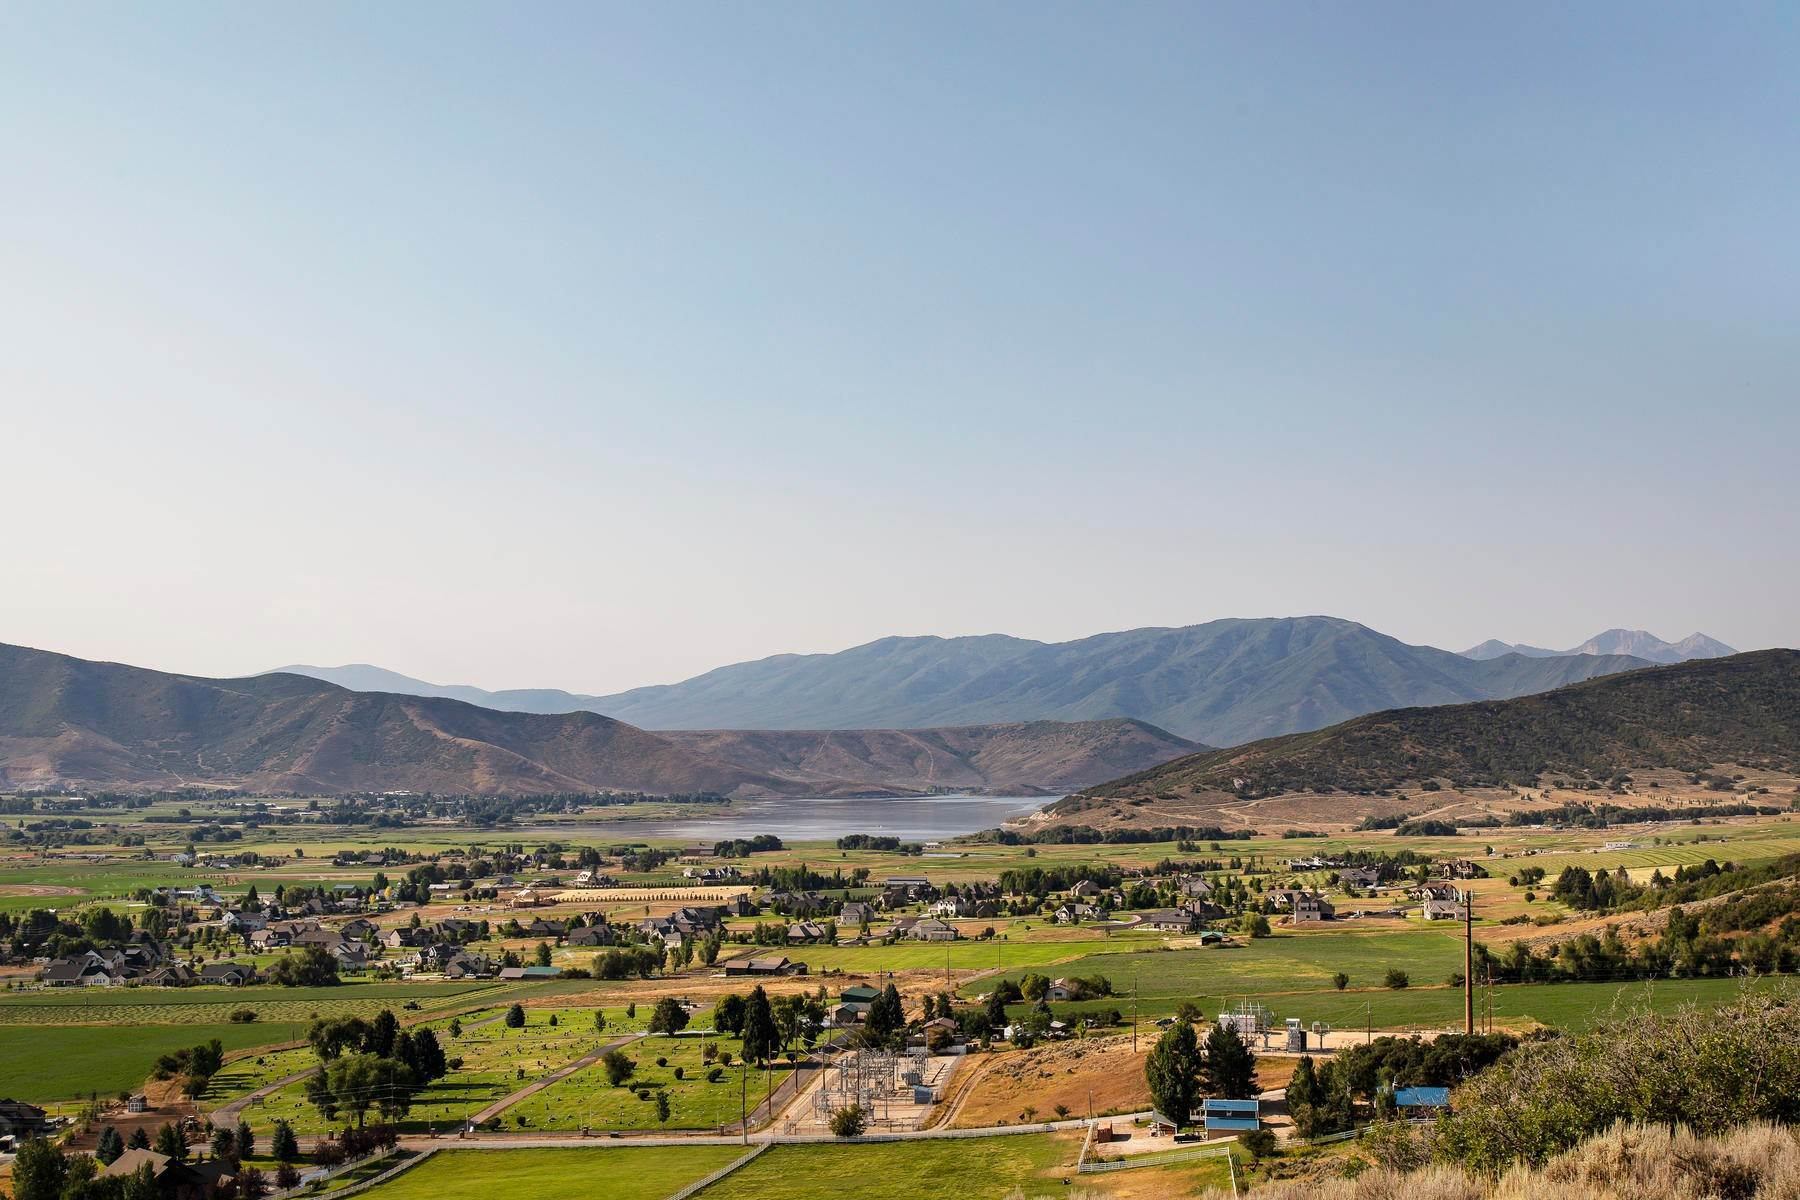 17. Land for Sale at 67 Acres in Midway with Huge Views of the Heber Valley 800 W 500 S Midway, Utah 84049 United States